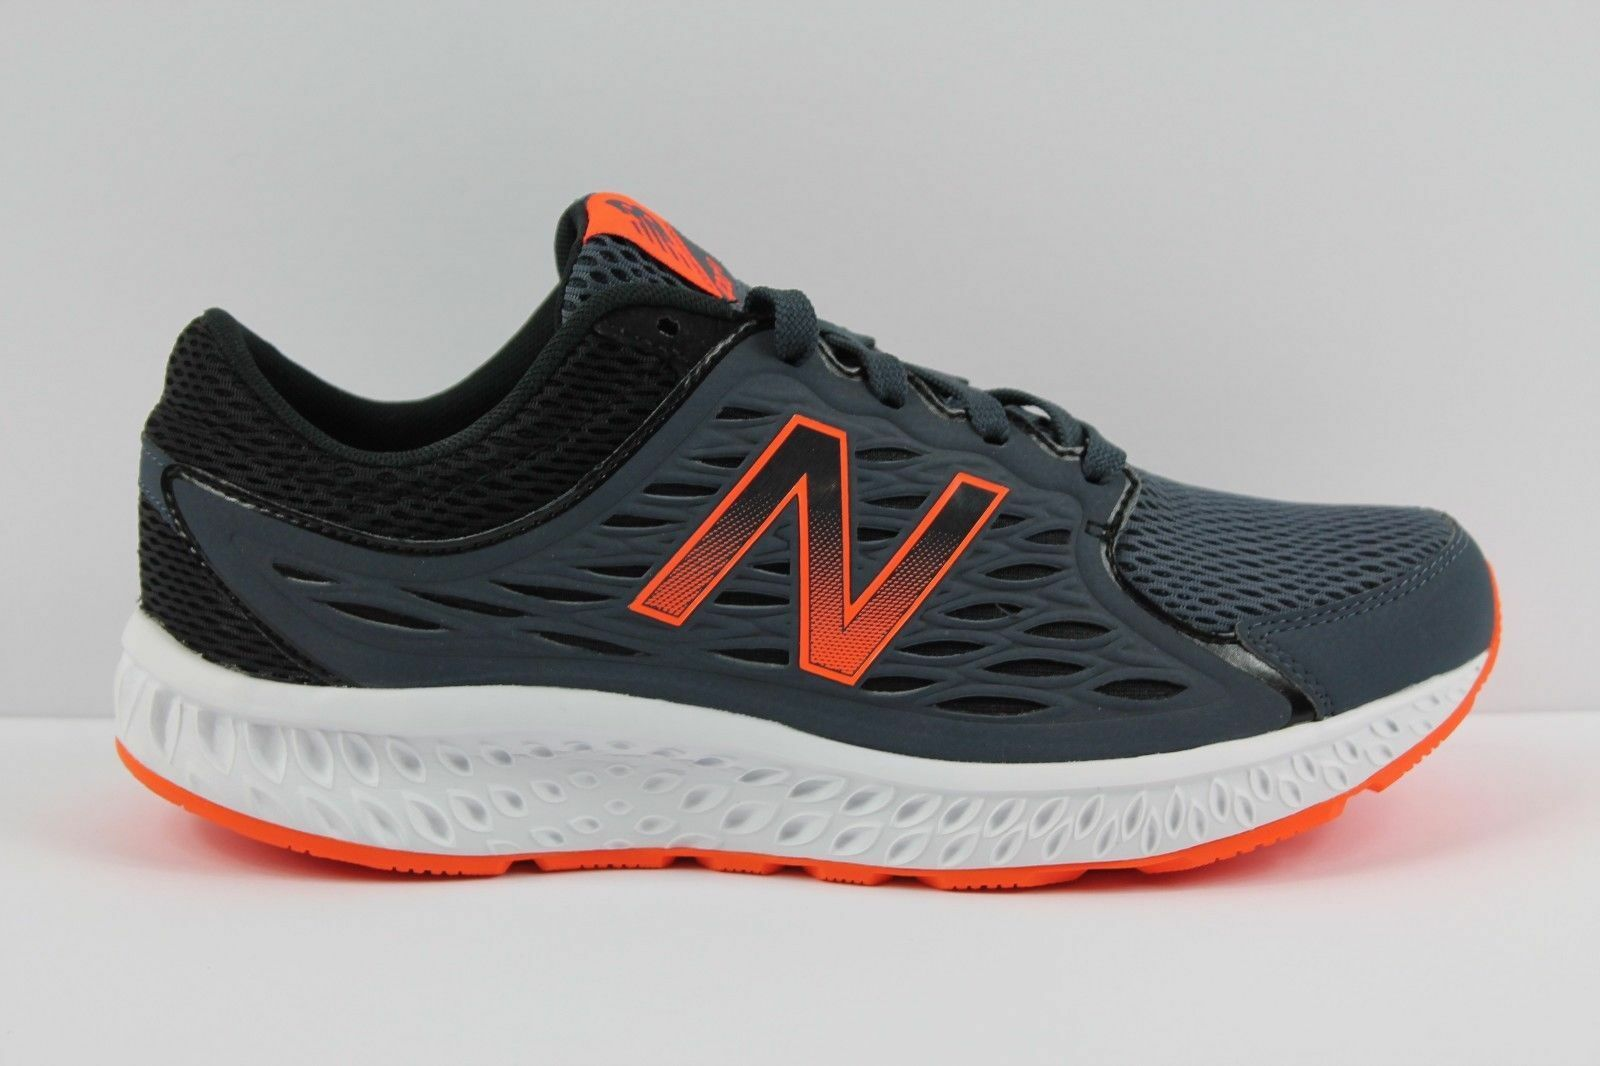 NEW Balance Men's M420LT3 running shoes Sneakers Size 9 4E XWide Grey orange